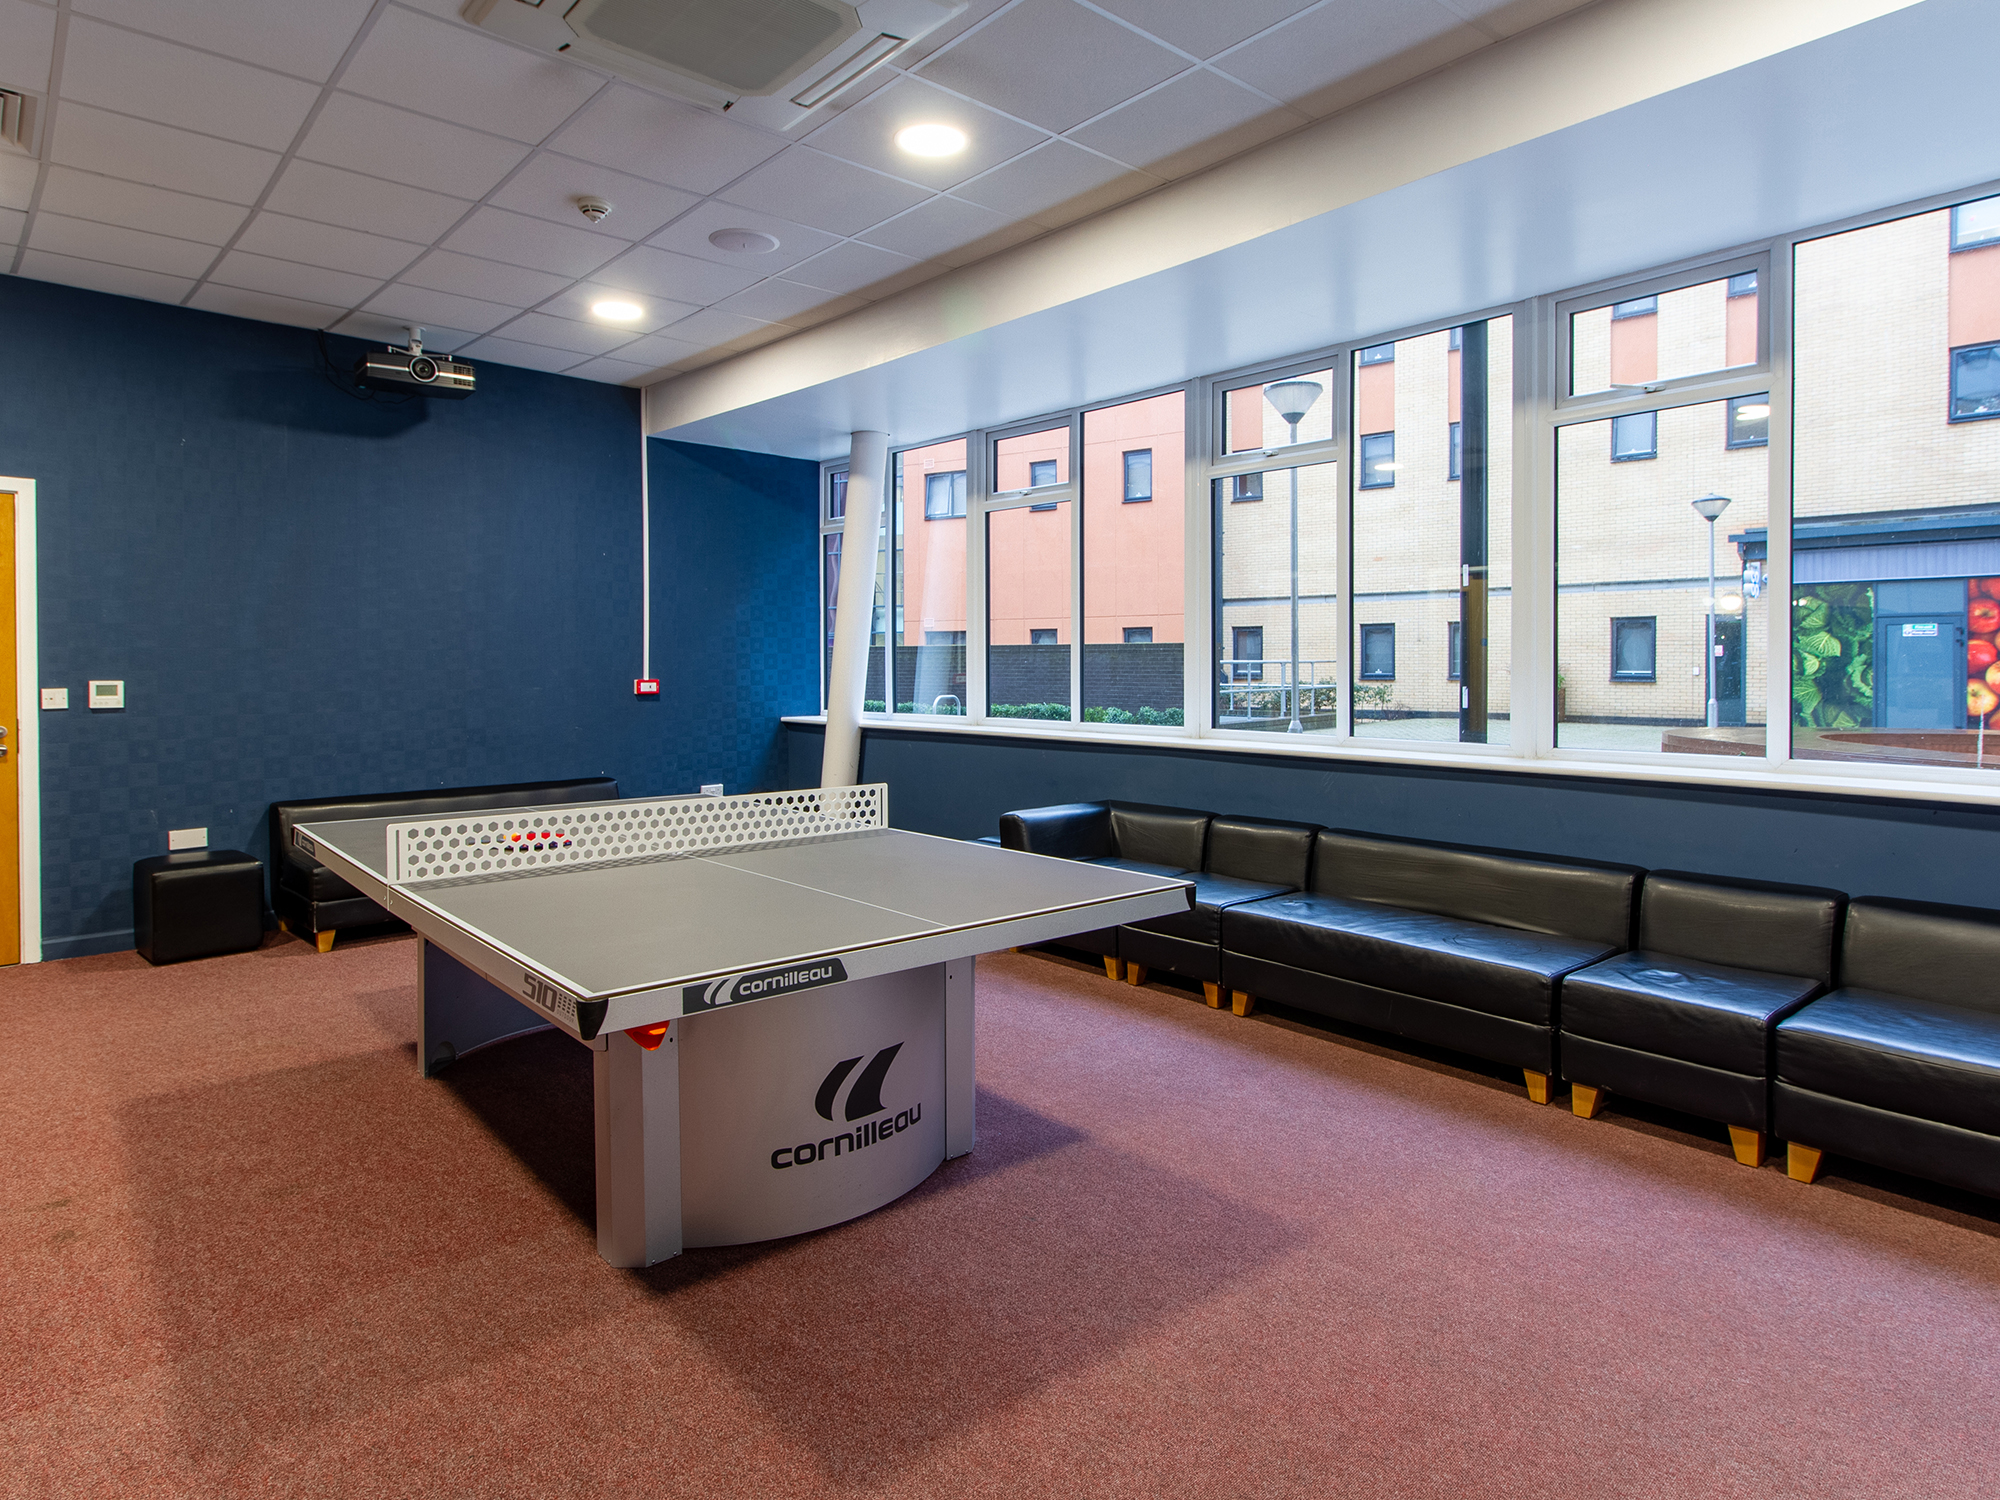 game room The Maltings Colchester student accommodation